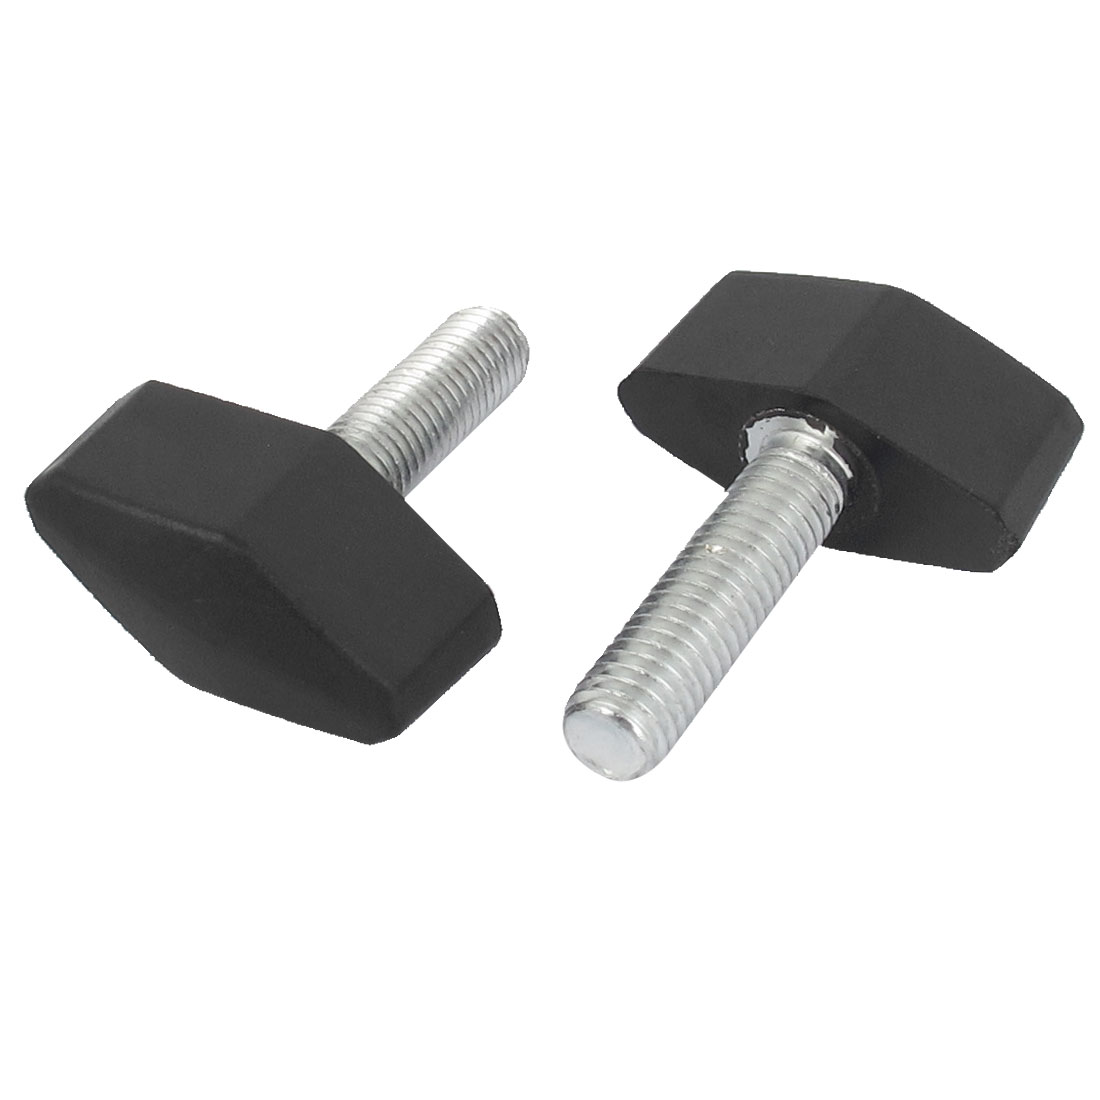 2pcs 6mm x 30mm Male Thread Plastic T Handle Screw On Type Clamping Knob